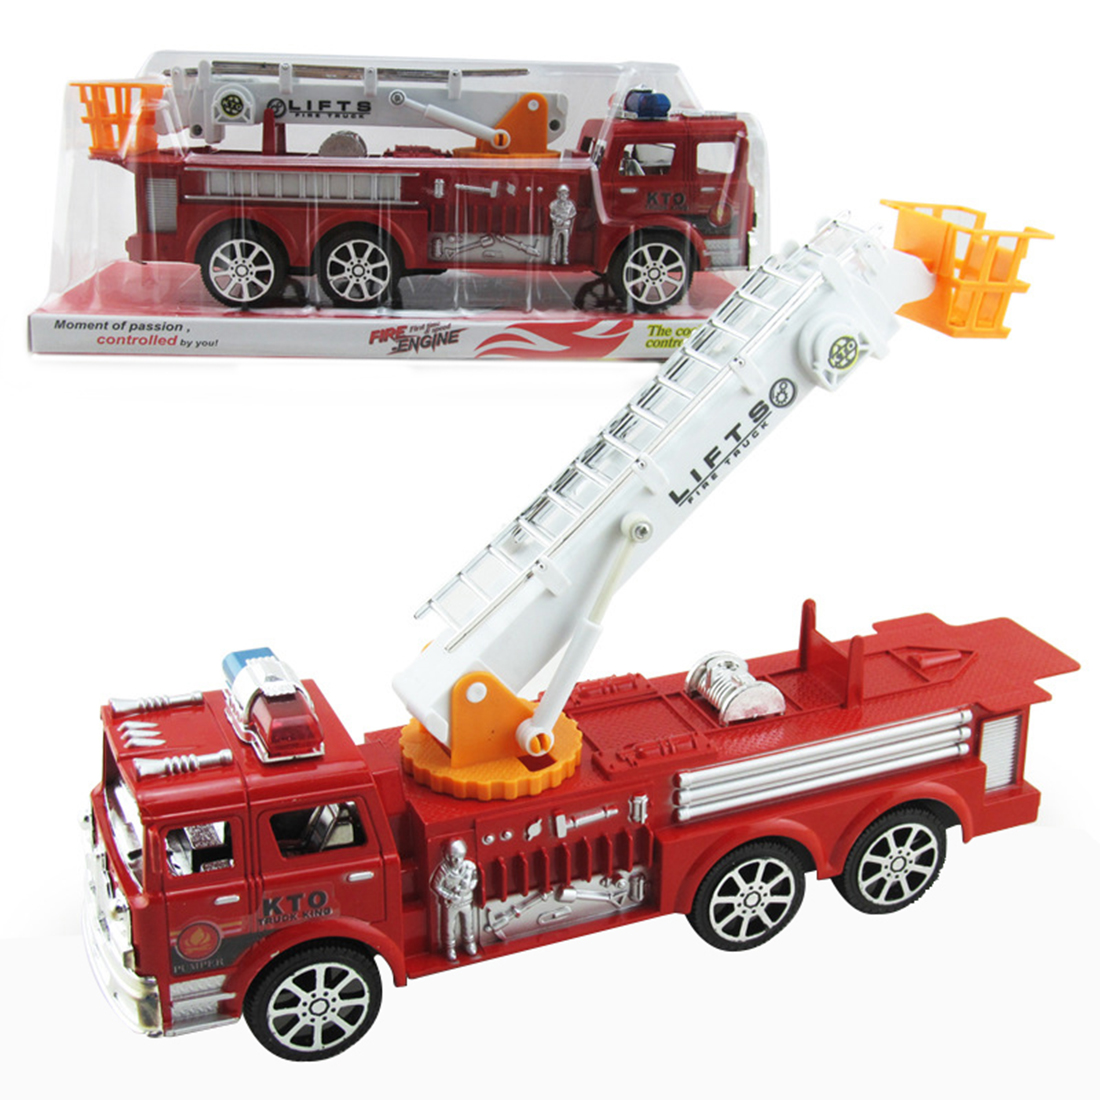 Pretend Play Firemen Large Size Artificial Aerial Ladder Truck Fire Fighting Truck Model For Kids Learning Playing Toys For Kids Firm In Structure